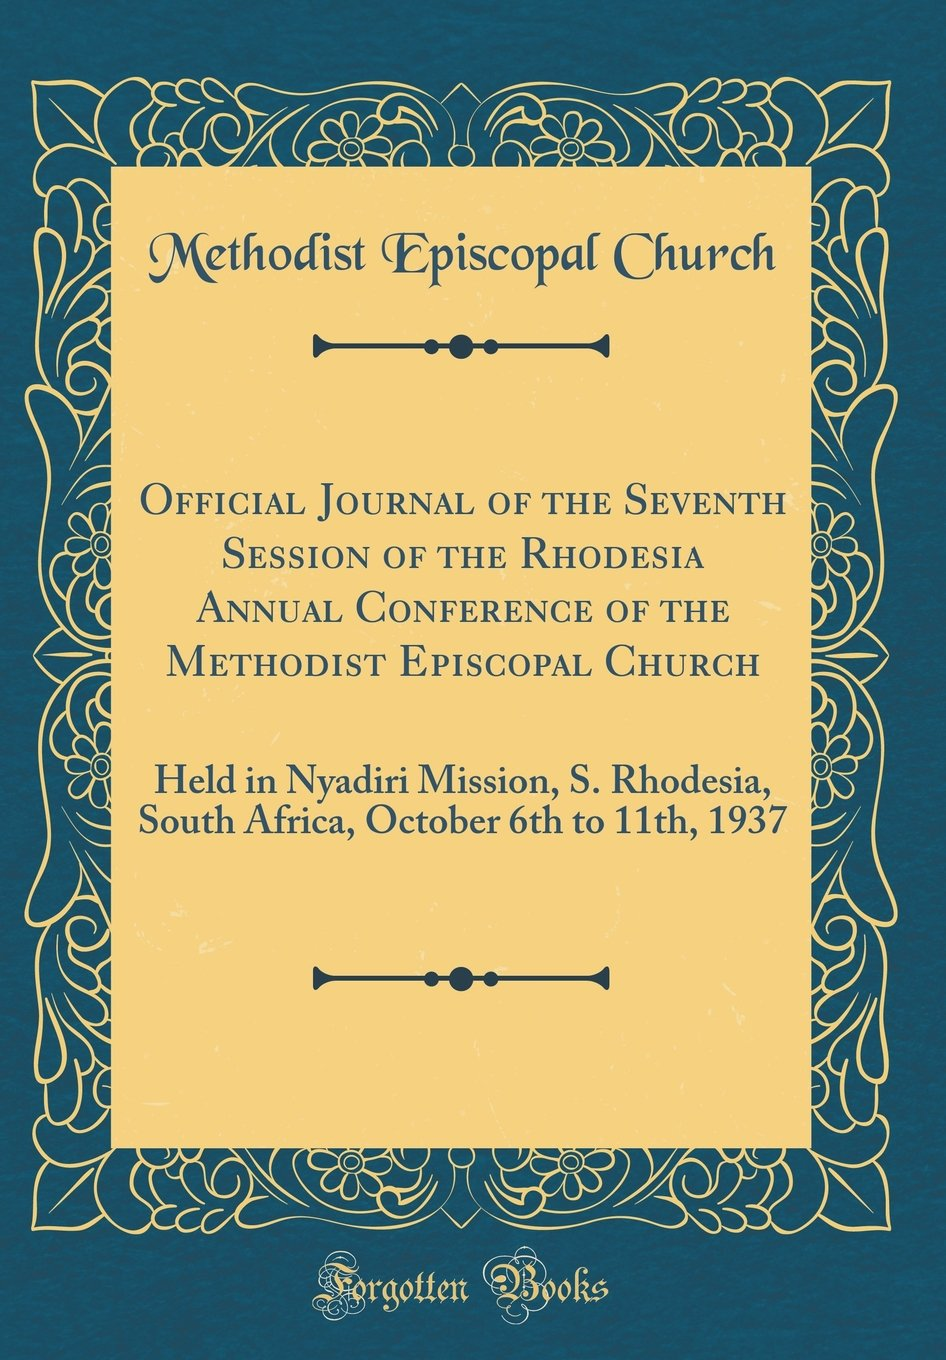 Official Journal of the Seventh Session of the Rhodesia Annual Conference of the Methodist Episcopal Church: Held in Nyadiri Mission, S. Rhodesia, ... October 6th to 11th, 1937 (Classic Reprint) pdf epub